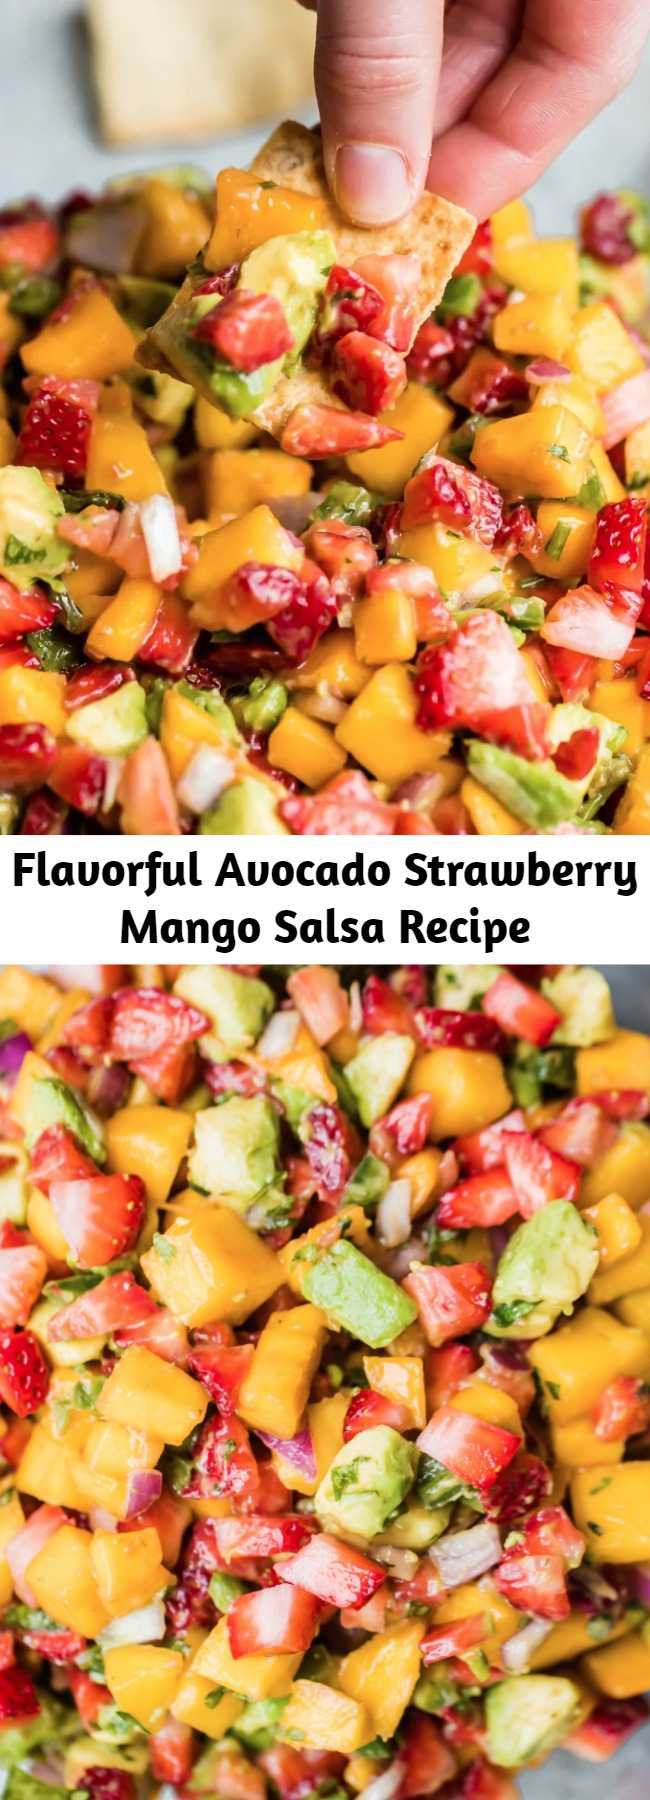 Flavorful Avocado Strawberry Mango Salsa Recipe - Bright and flavorful Avocado Strawberry Mango Salsa for dipping chips or adding to salads, tacos, fish, or chicken! This new take on salsa has hints of sweetness from fresh strawberries and mango, creaminess from avocado, and a kick of heat from jalapeño. It takes just 15 minutes to make and is perfect for parties! #salsa #partyfood #bbq #avocados #mango #summerfood #potluck